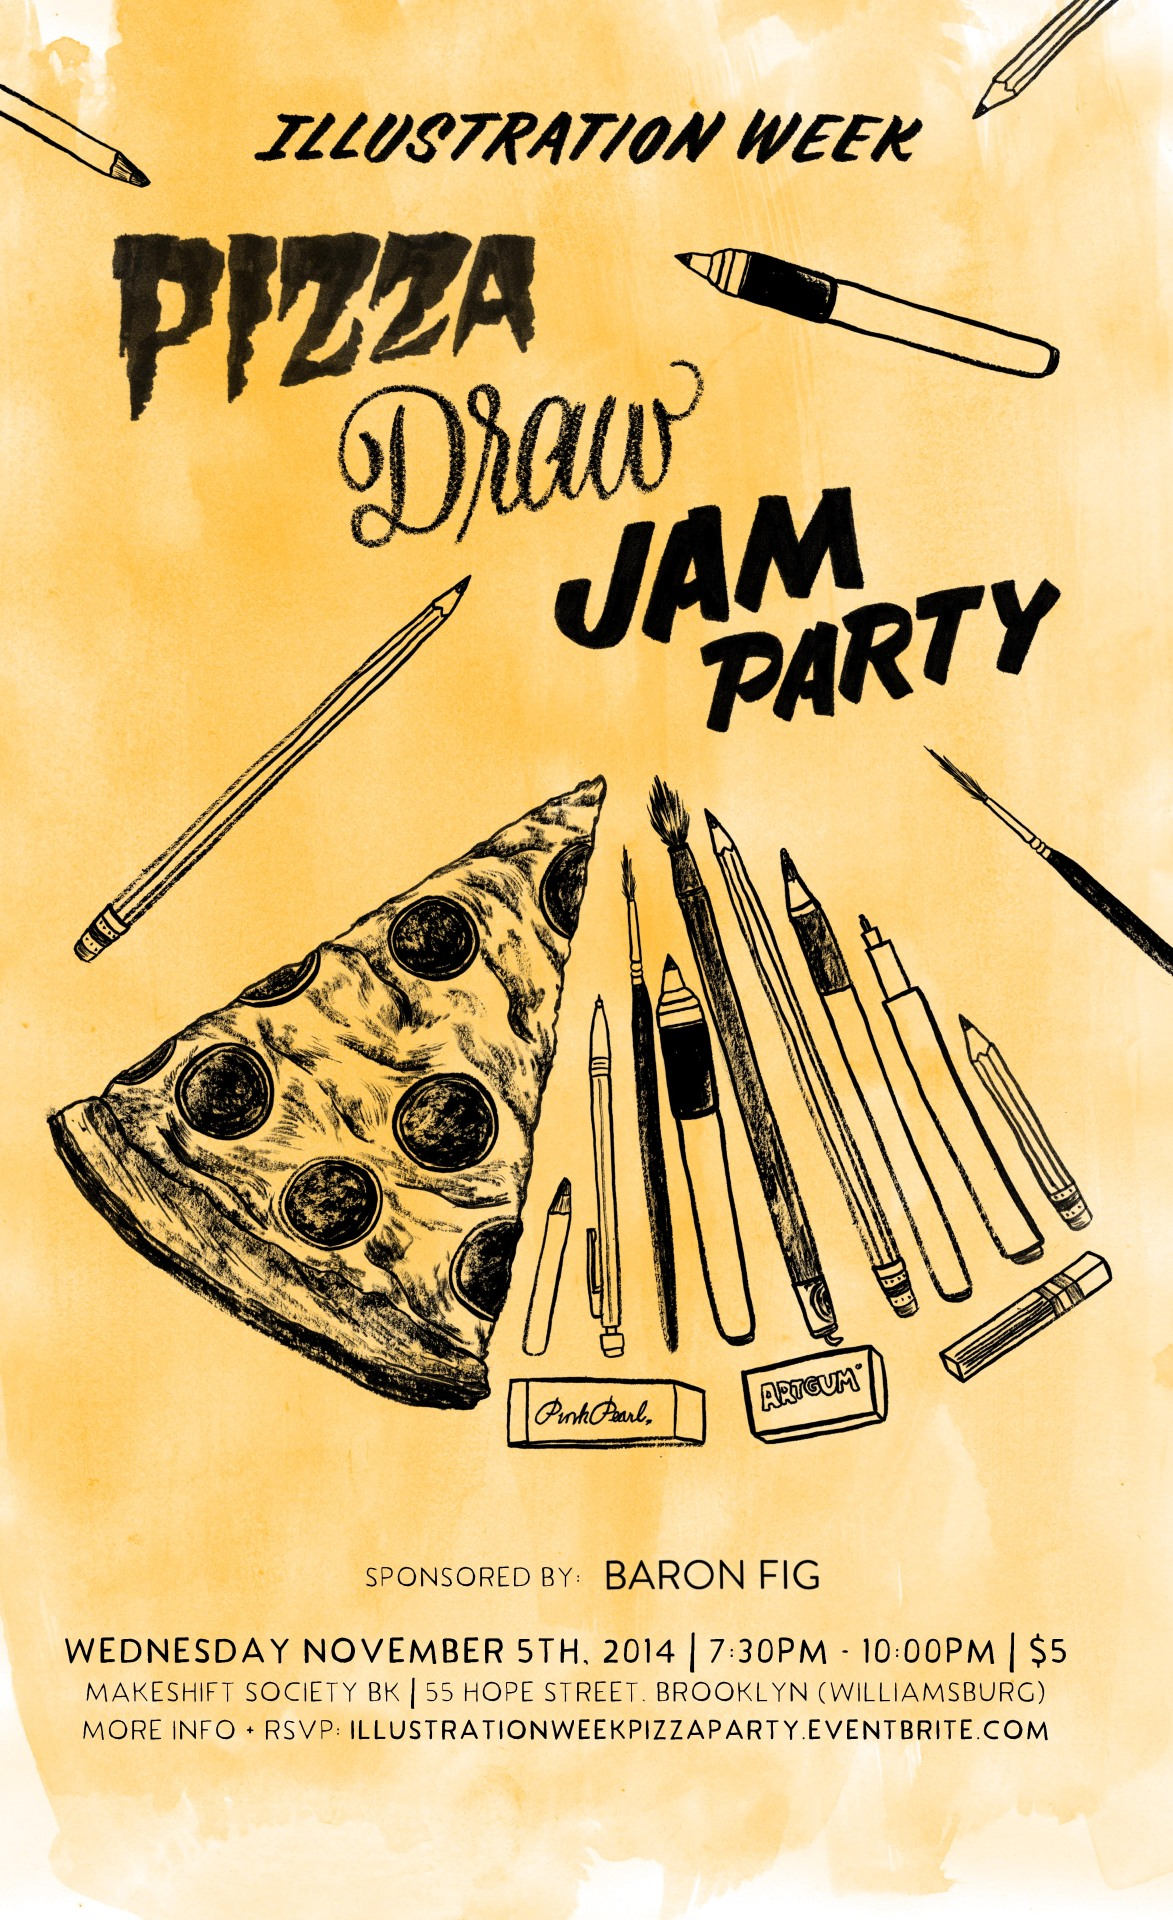 I am hosting the  Pizza Draw Jam Party during illustration week!     For more info + RSVP:  illustrationweekpizzaparty.eventbrite.com    Event Logo by  Jen Mussari    Illustration and Design by  Daniel Fishel (me!)